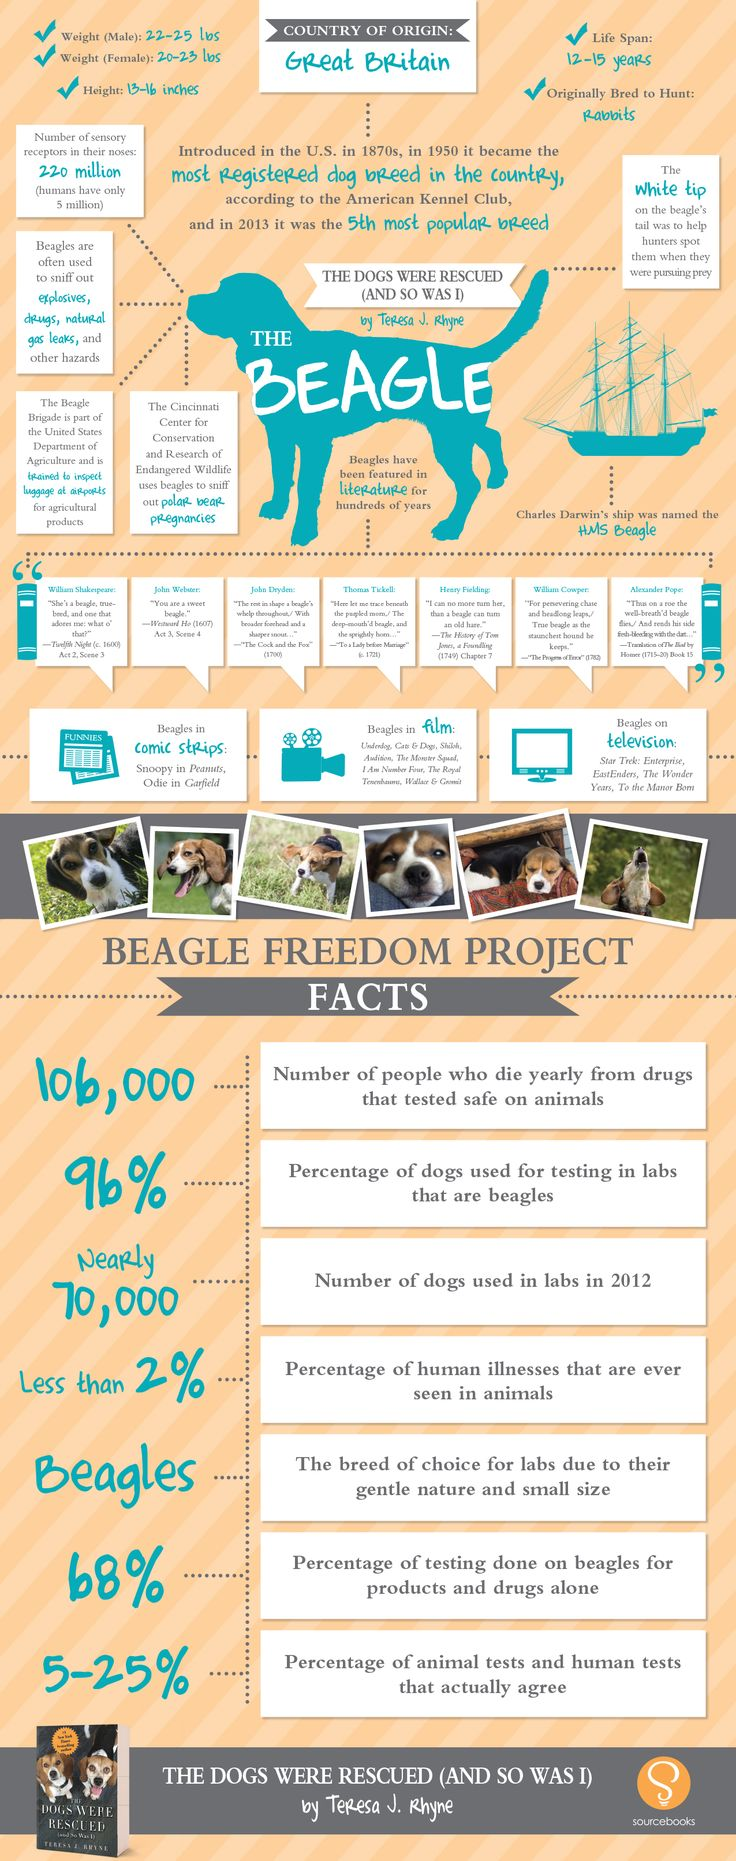 Beagle Fact Sheet @beaglefreedom The Dogs Were Rescued (and So Was I) by Teresa J. Rhyne (October 2014)